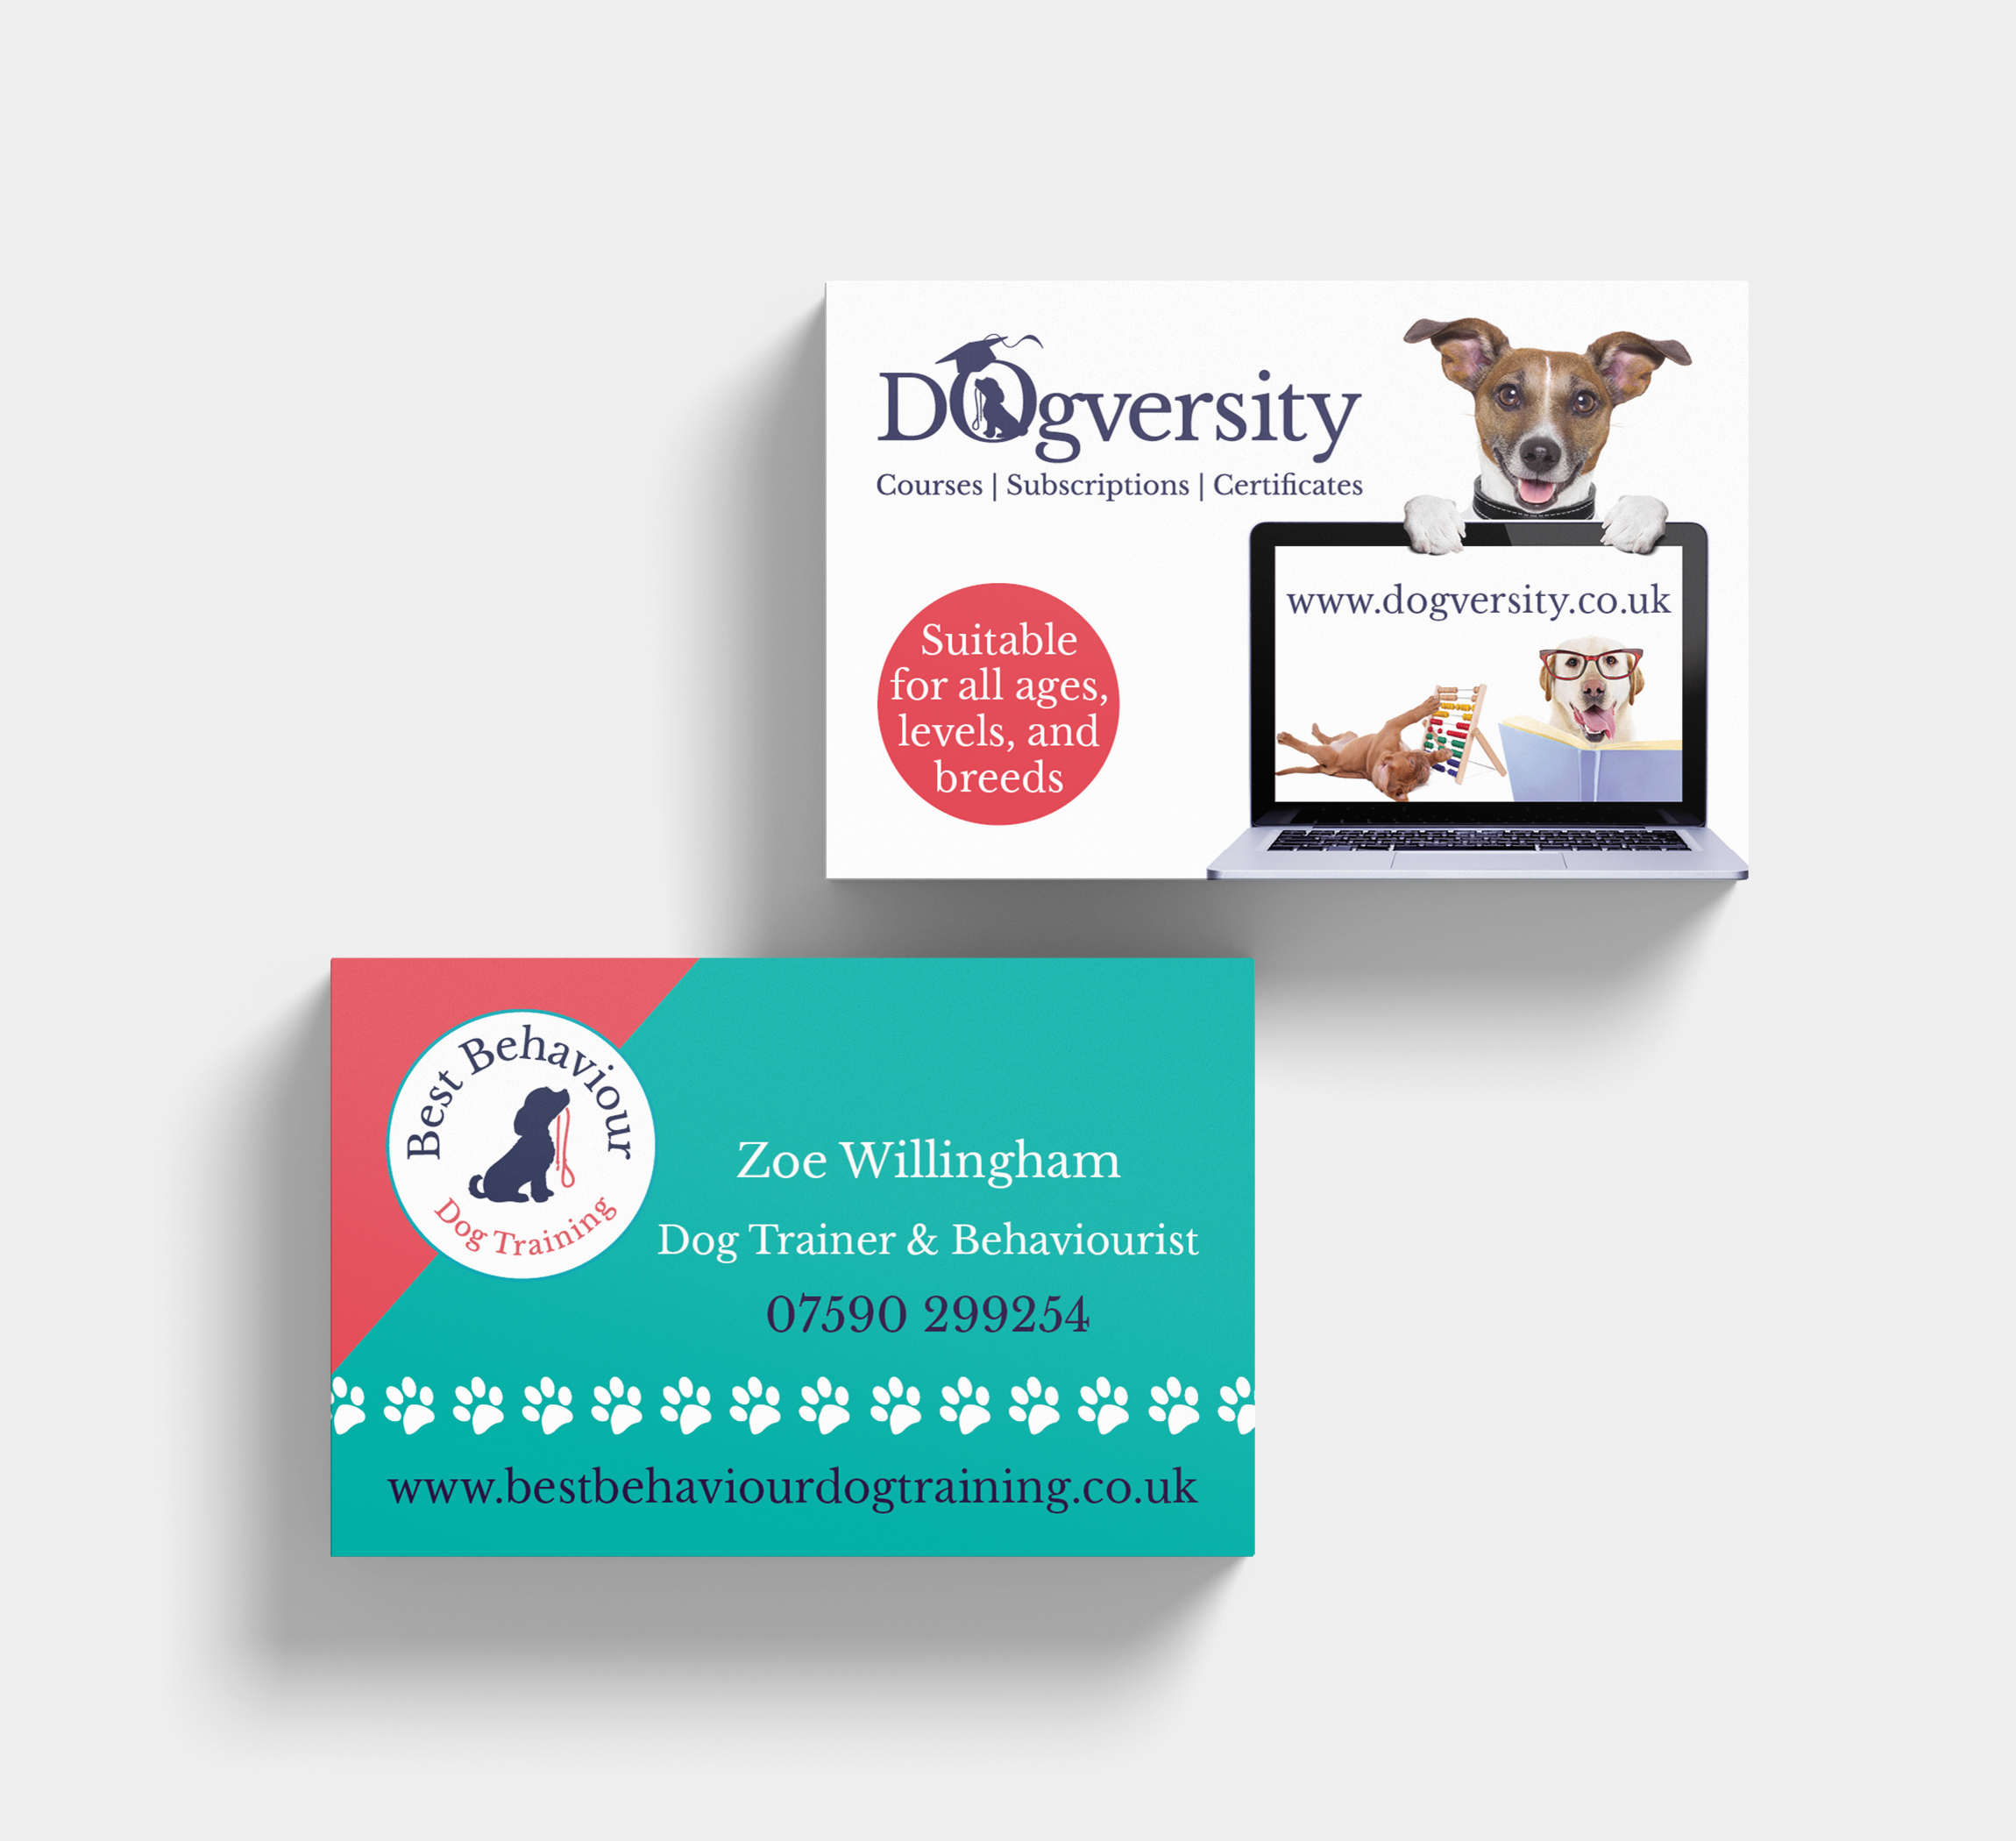 Creating new advertising for Best Behaviour and Dogversity